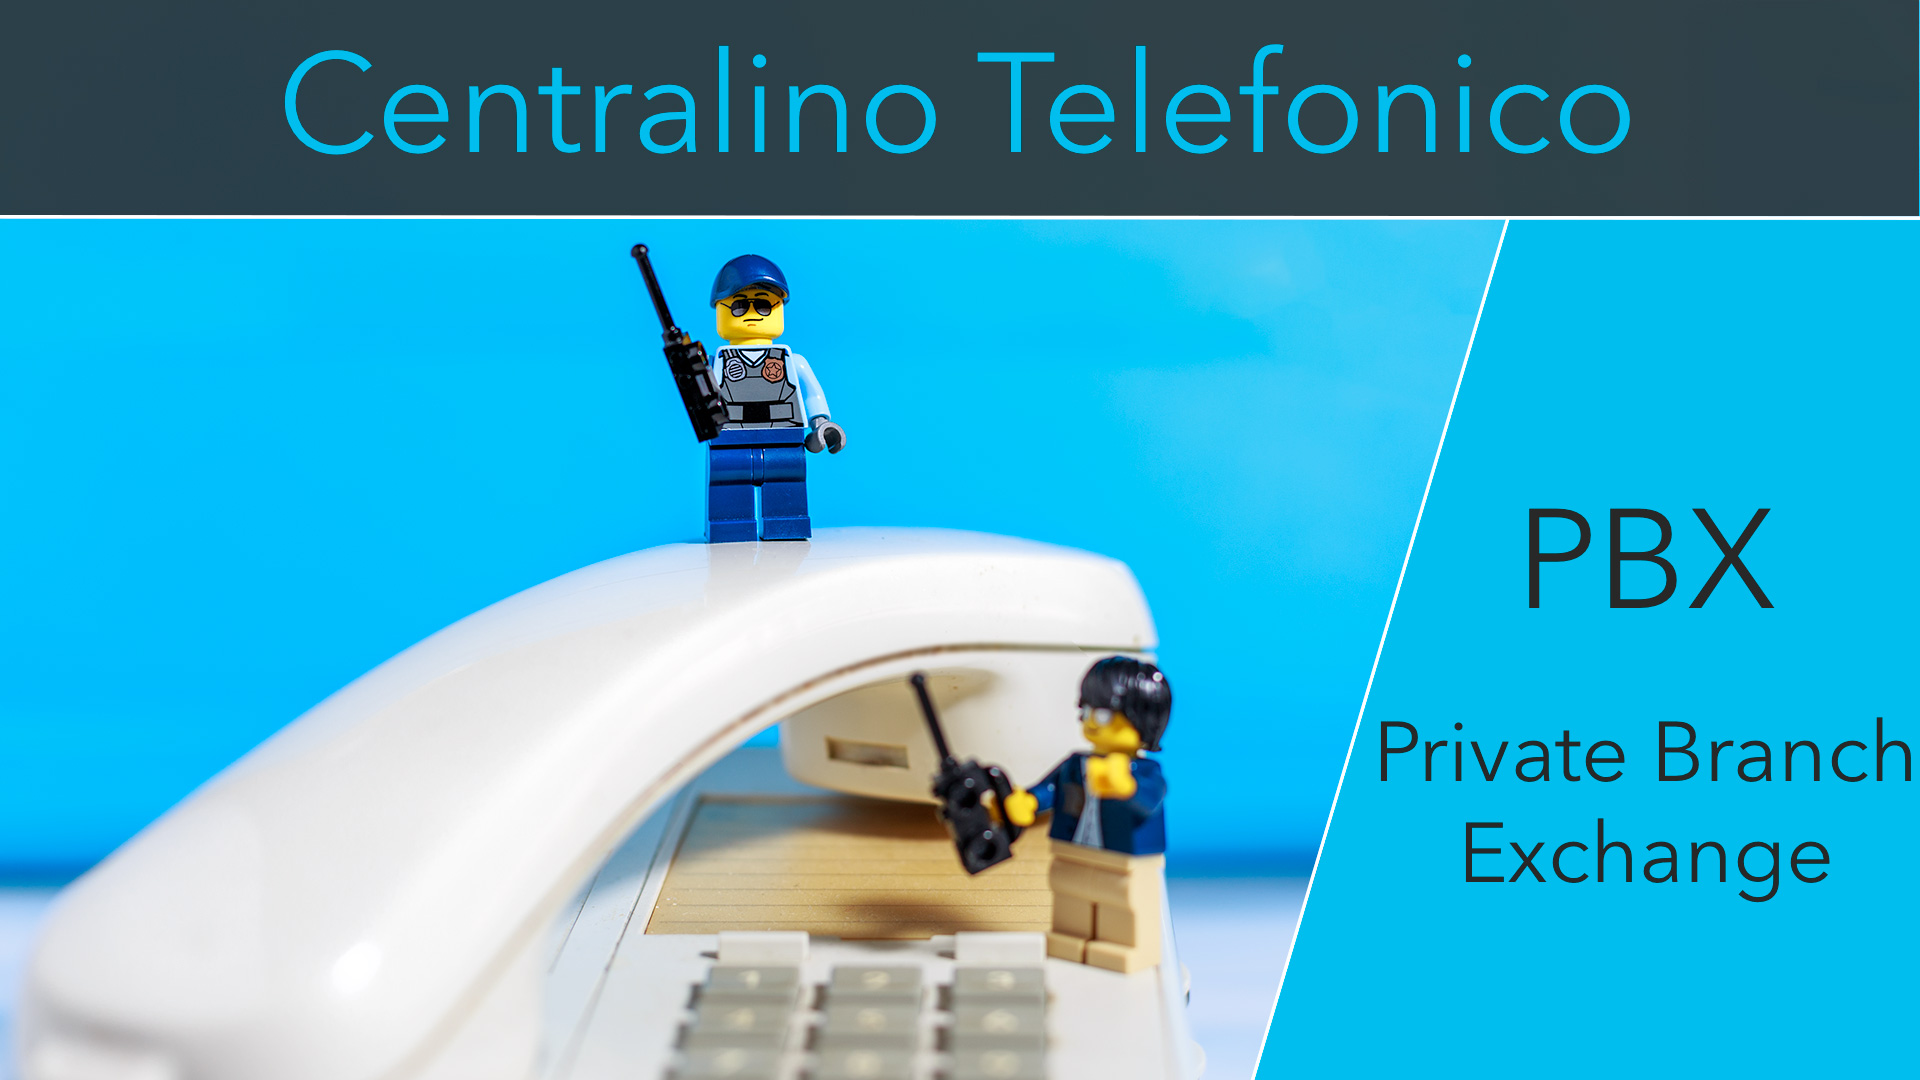 centralino telefonico o Private Branch Exchange